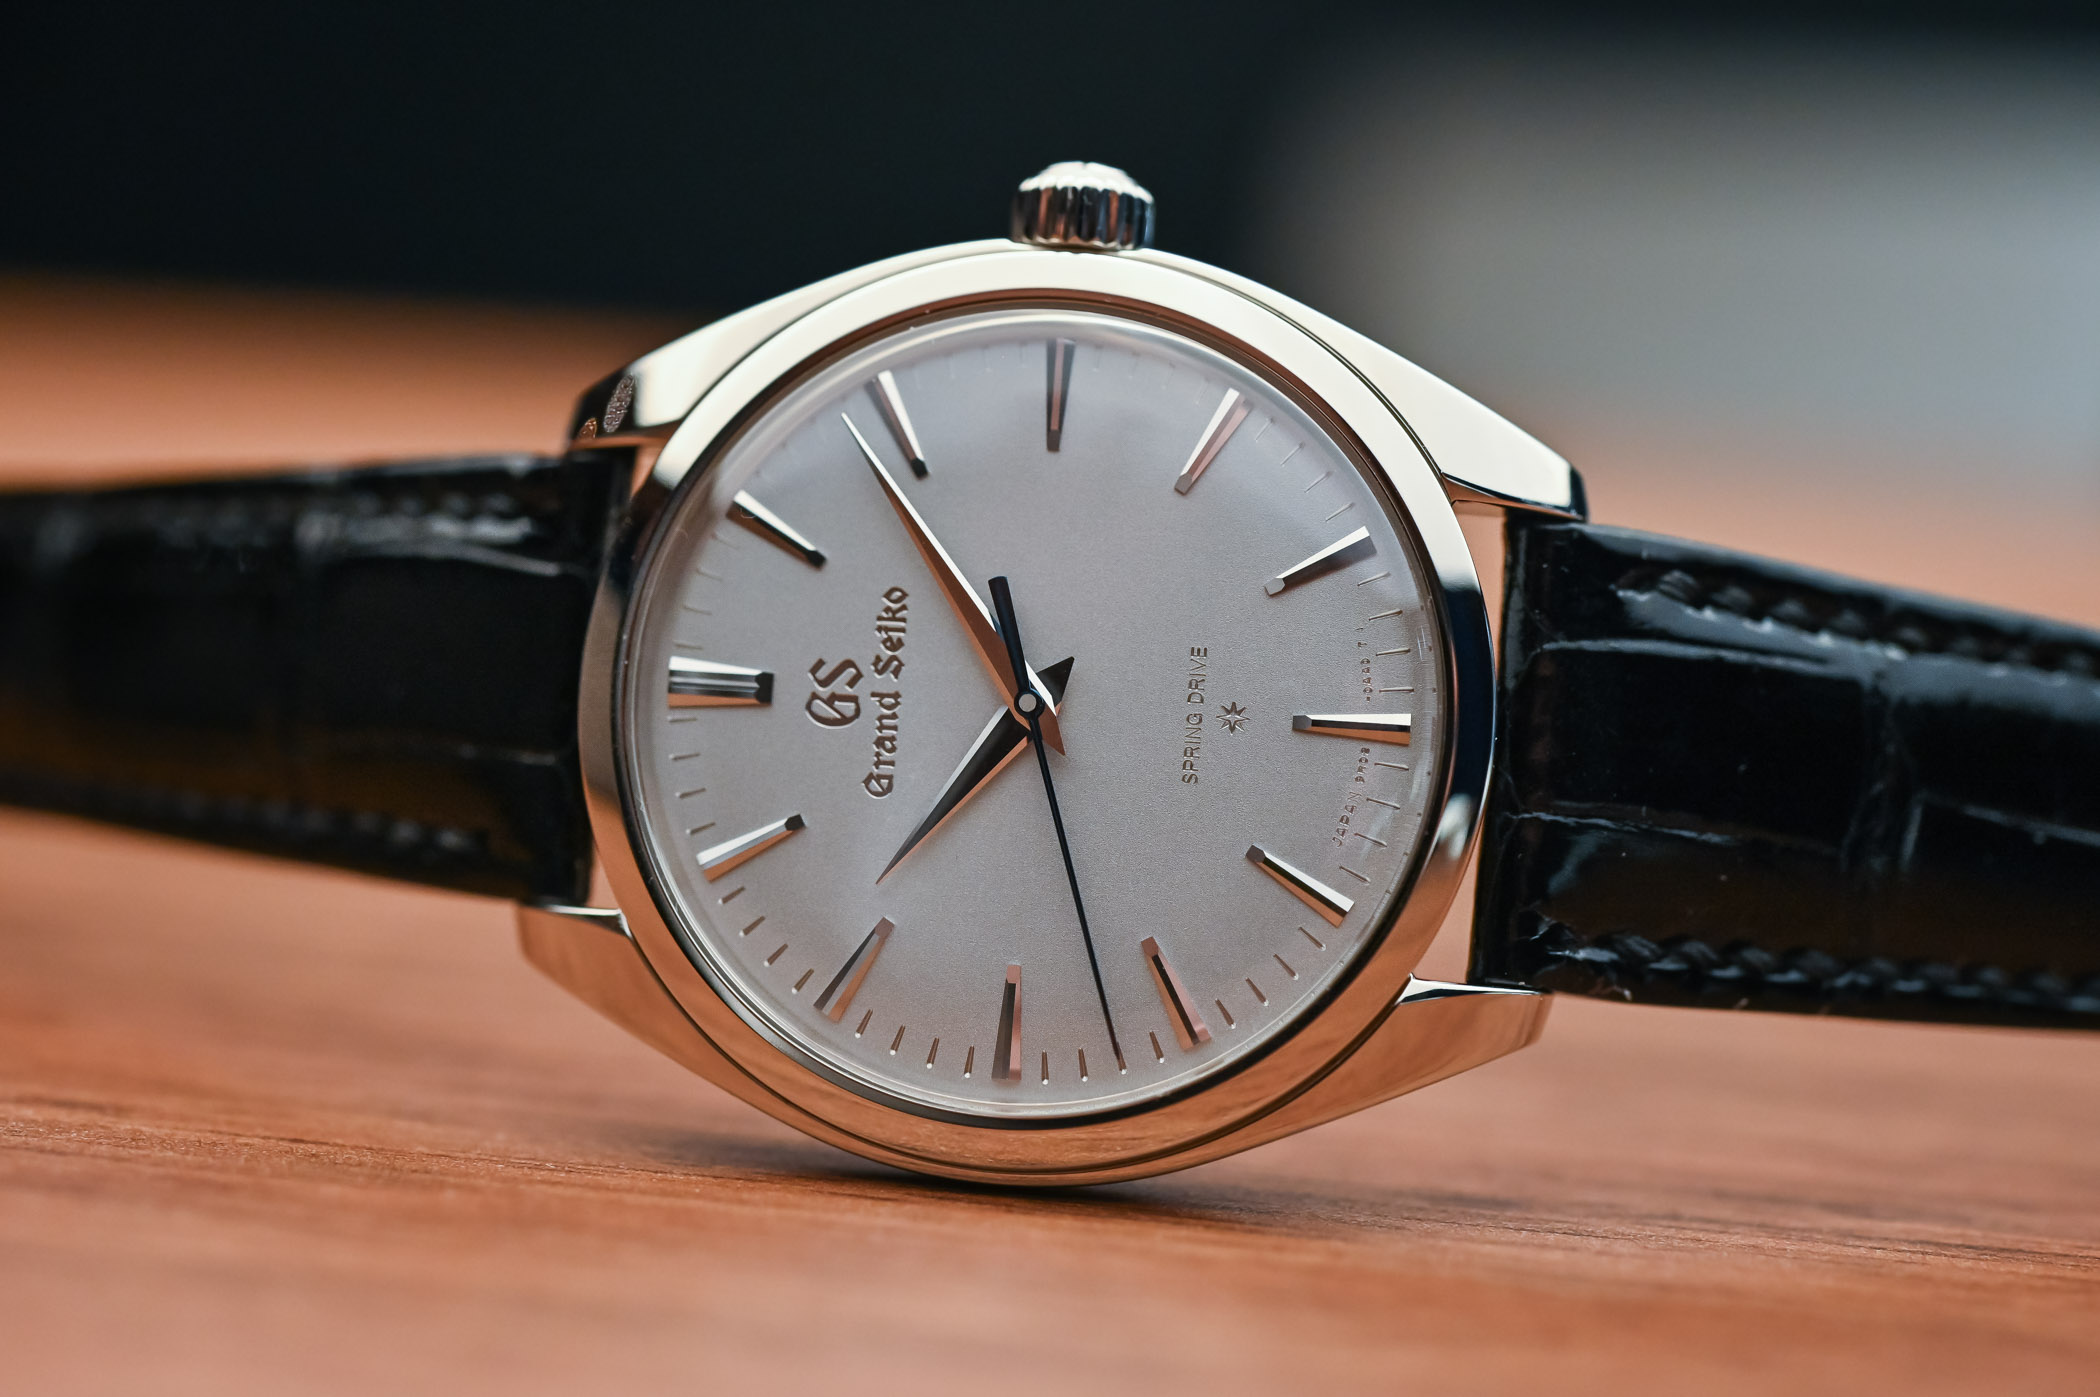 Grand Seiko Hand-Wound Spring Drive Collection - SBGY002 SBGY003 SBGZ002 SBGZ003 - 9